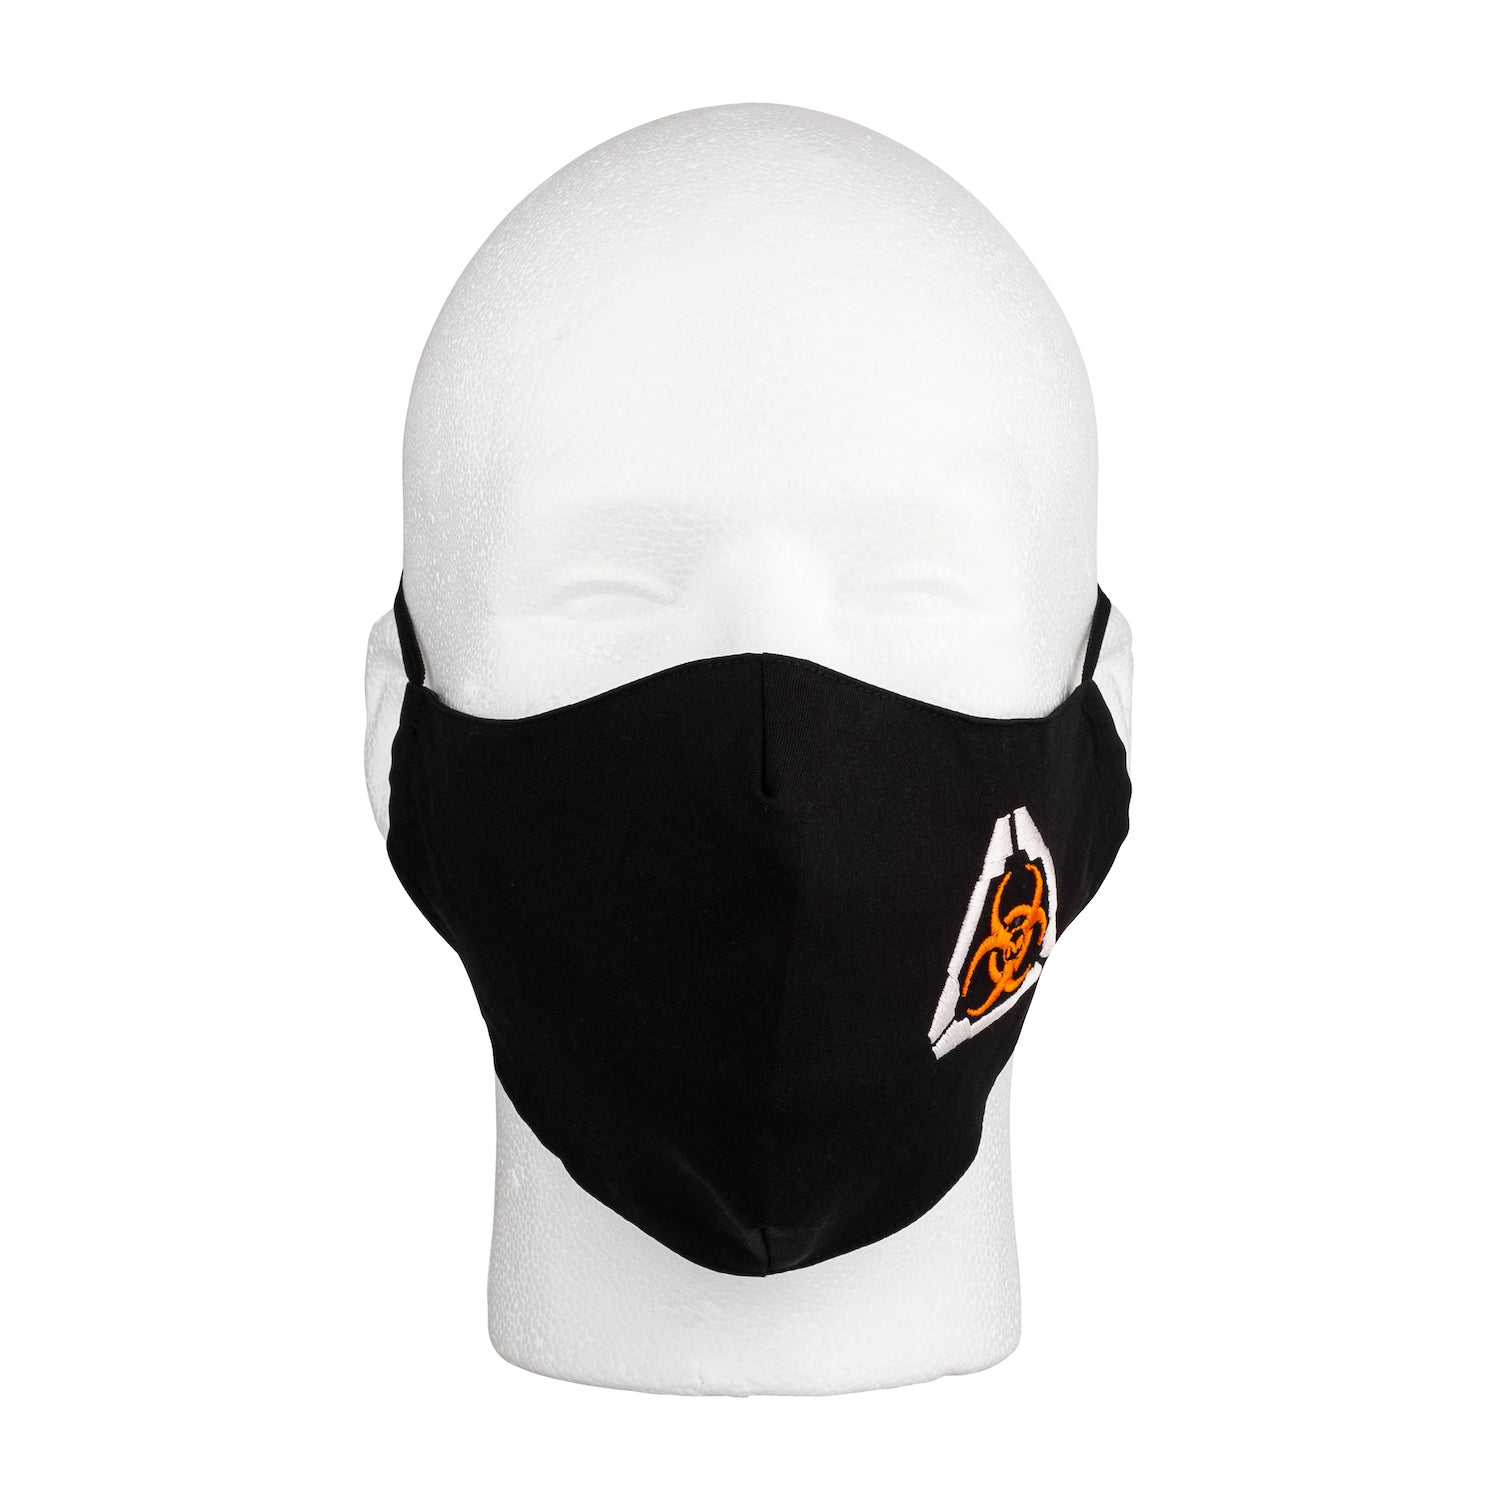 Front view of the MIRA Safety Mask with biohazard insignia on a mannequin head